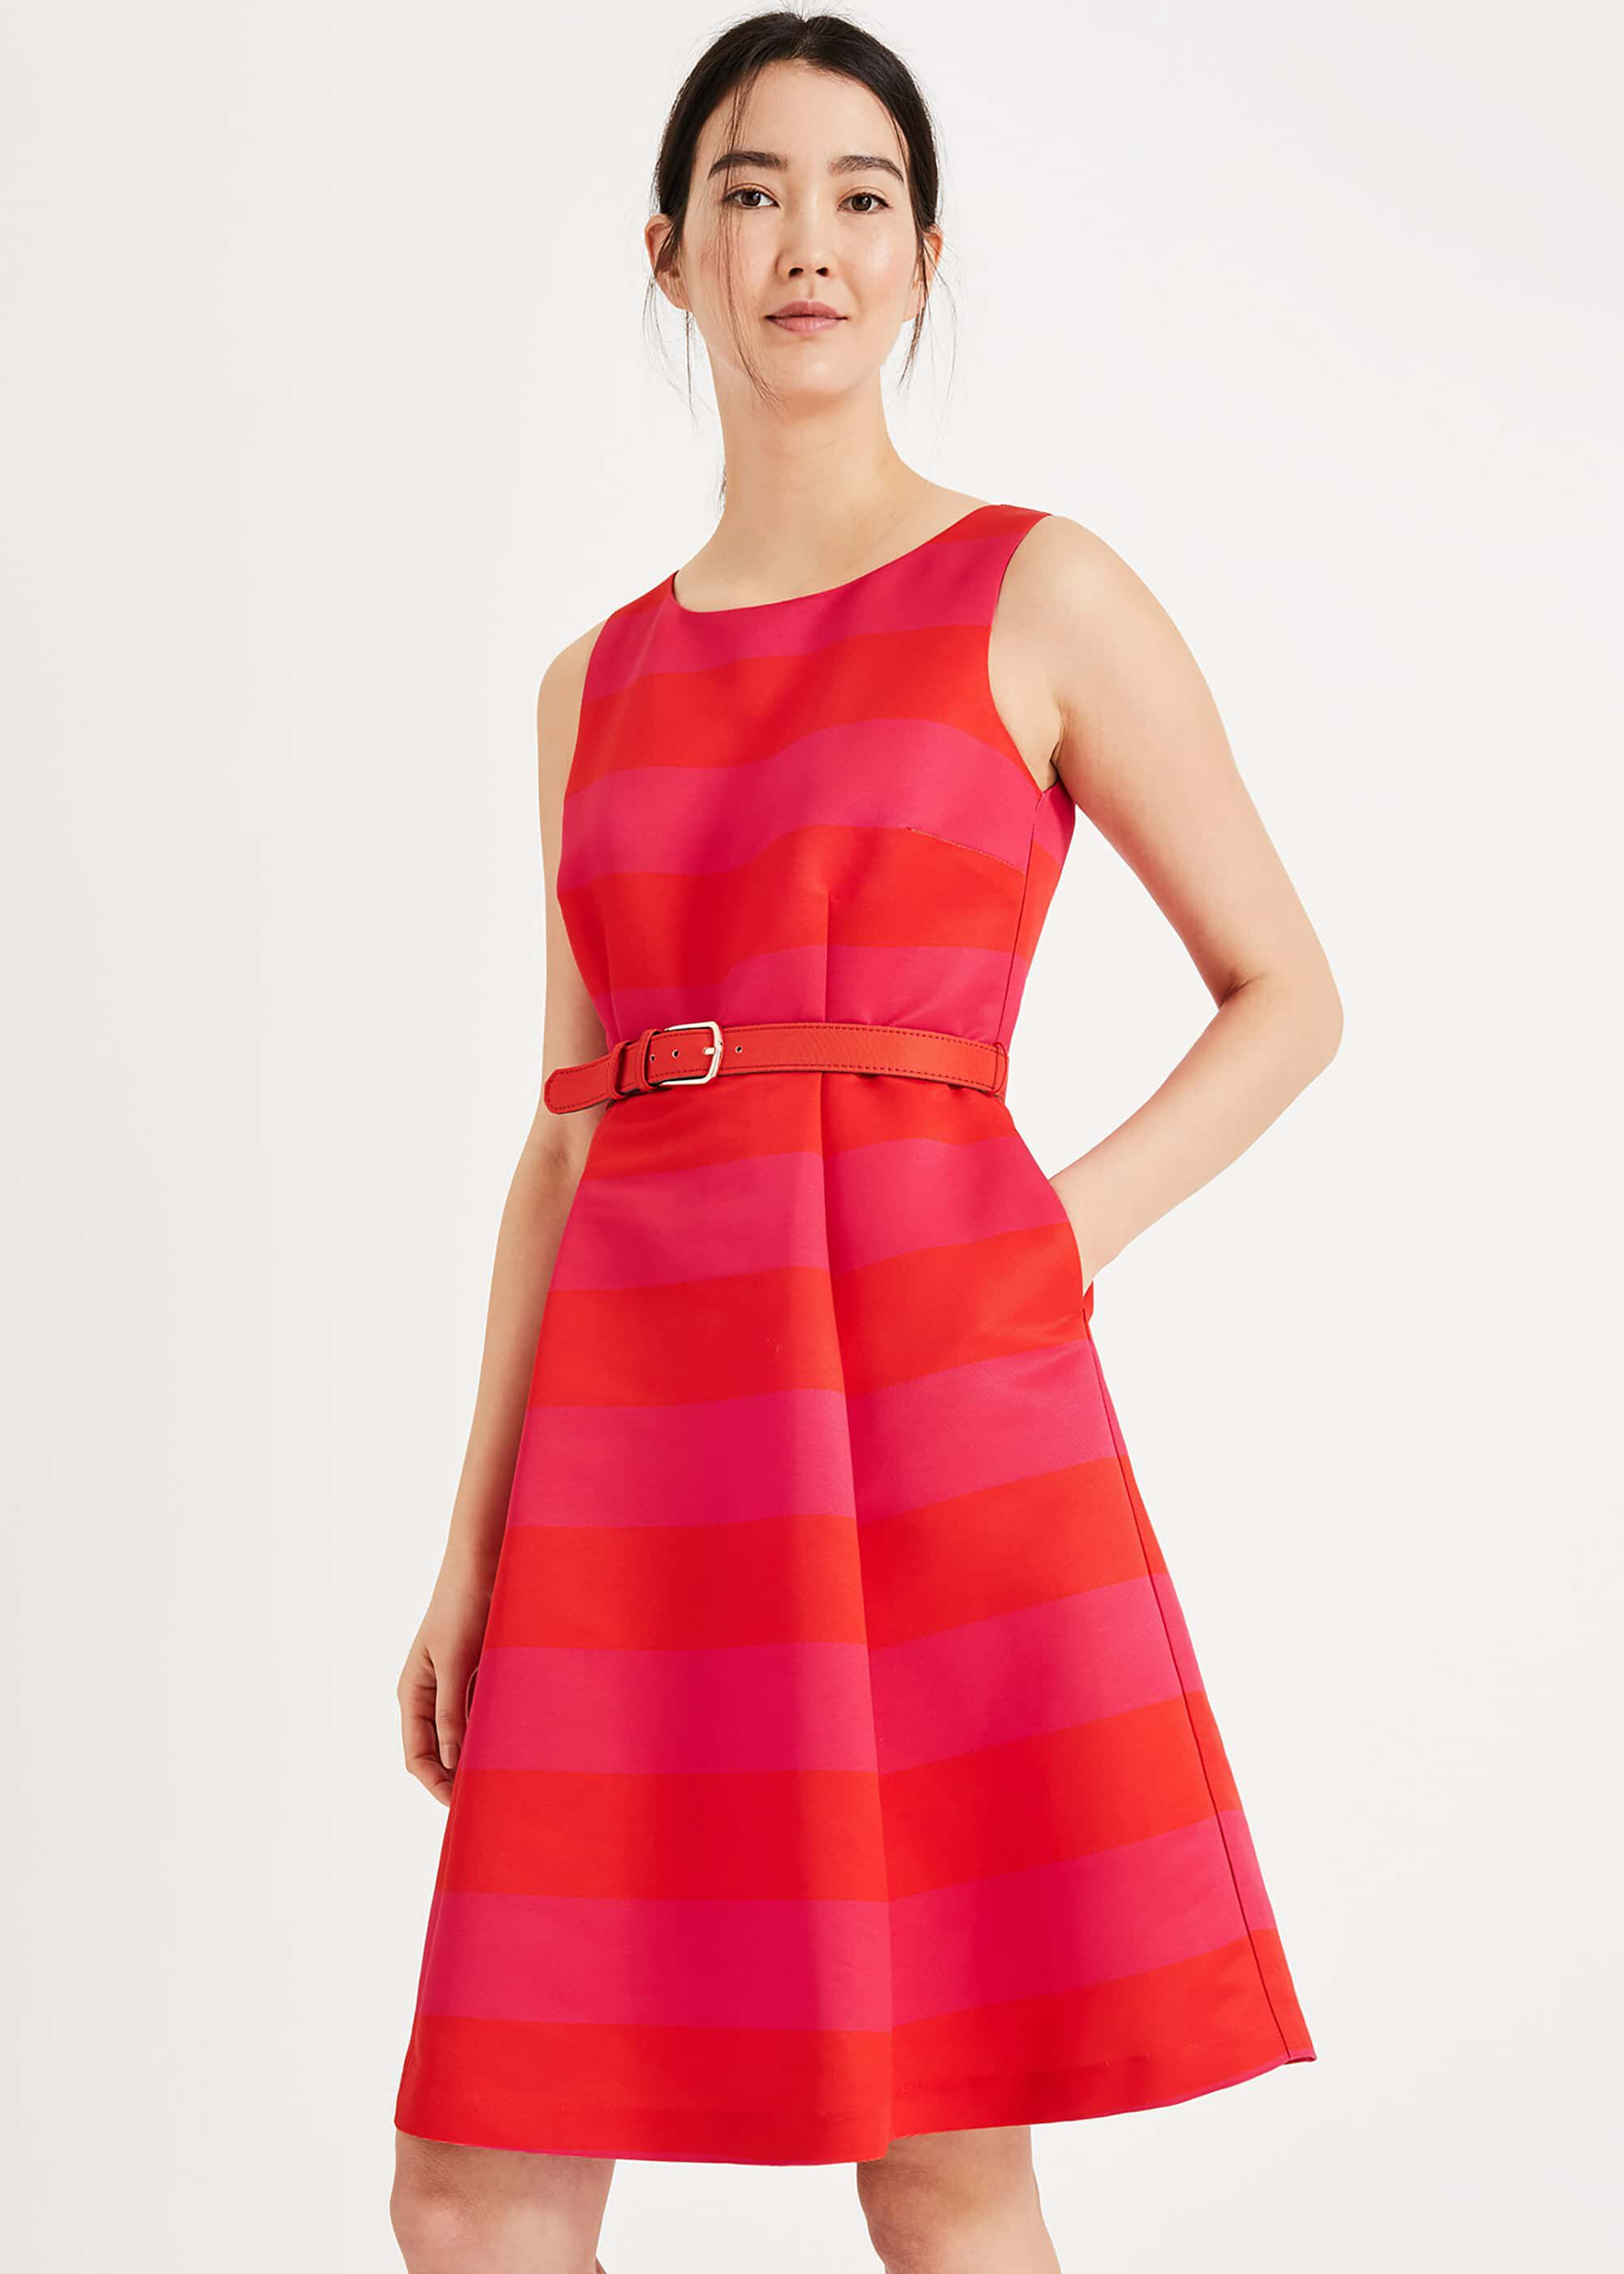 Phase Eight Andrea Stripe Dress, Pink, Fit & Flare, Occasion Dress